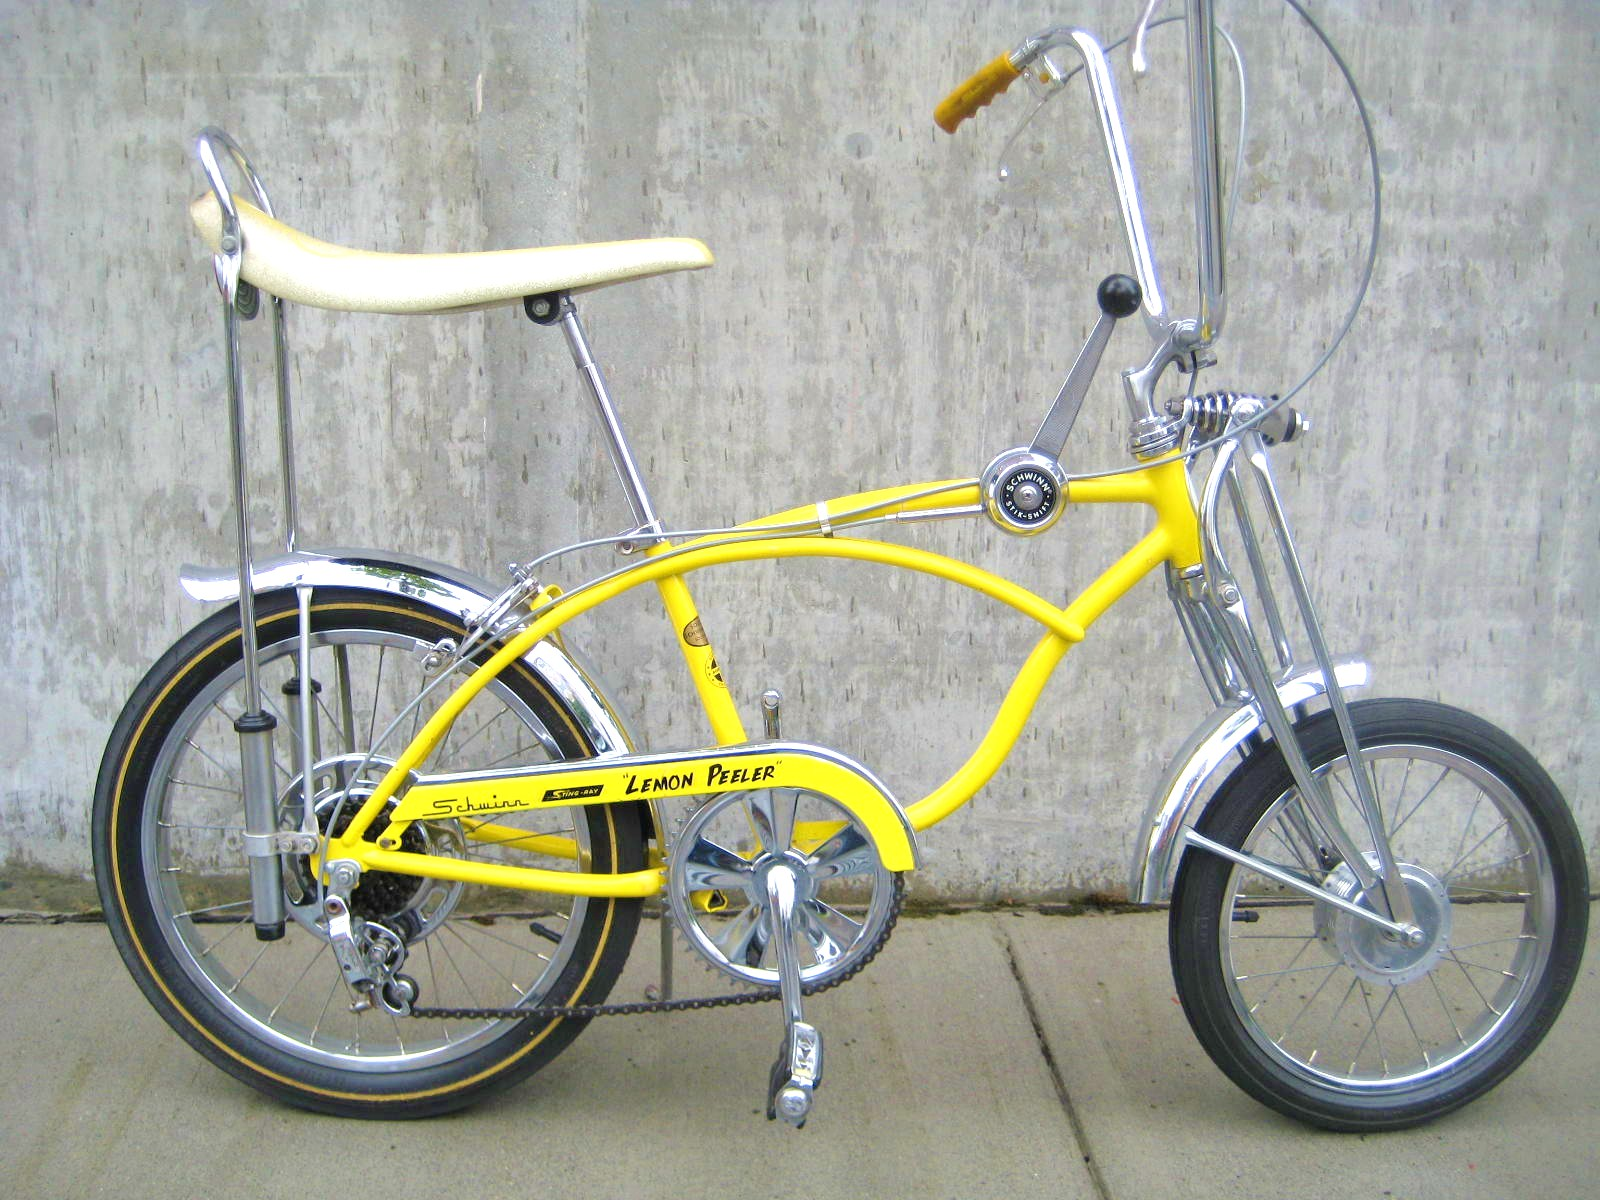 1968 Schwinn Lemon Peeler Krate Bike At Classic Cycle Classic